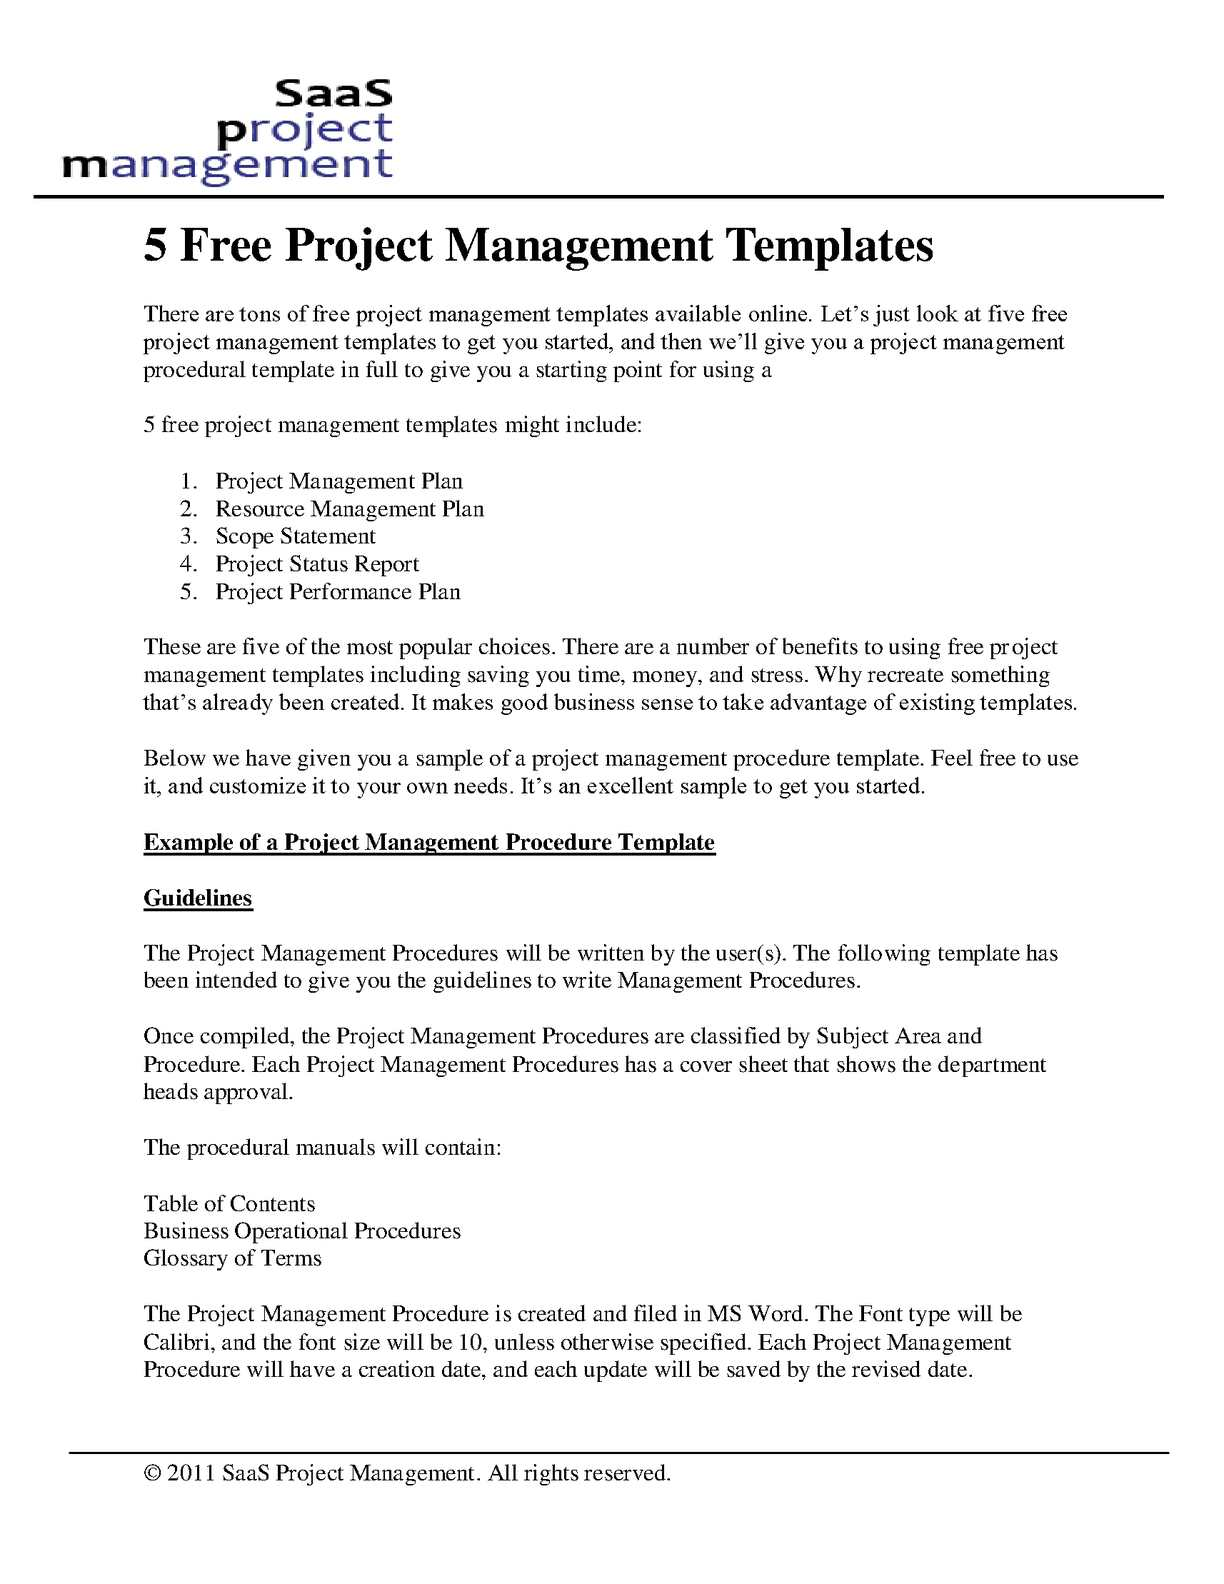 Calaméo Free Project Management Templates - Project management procedure template